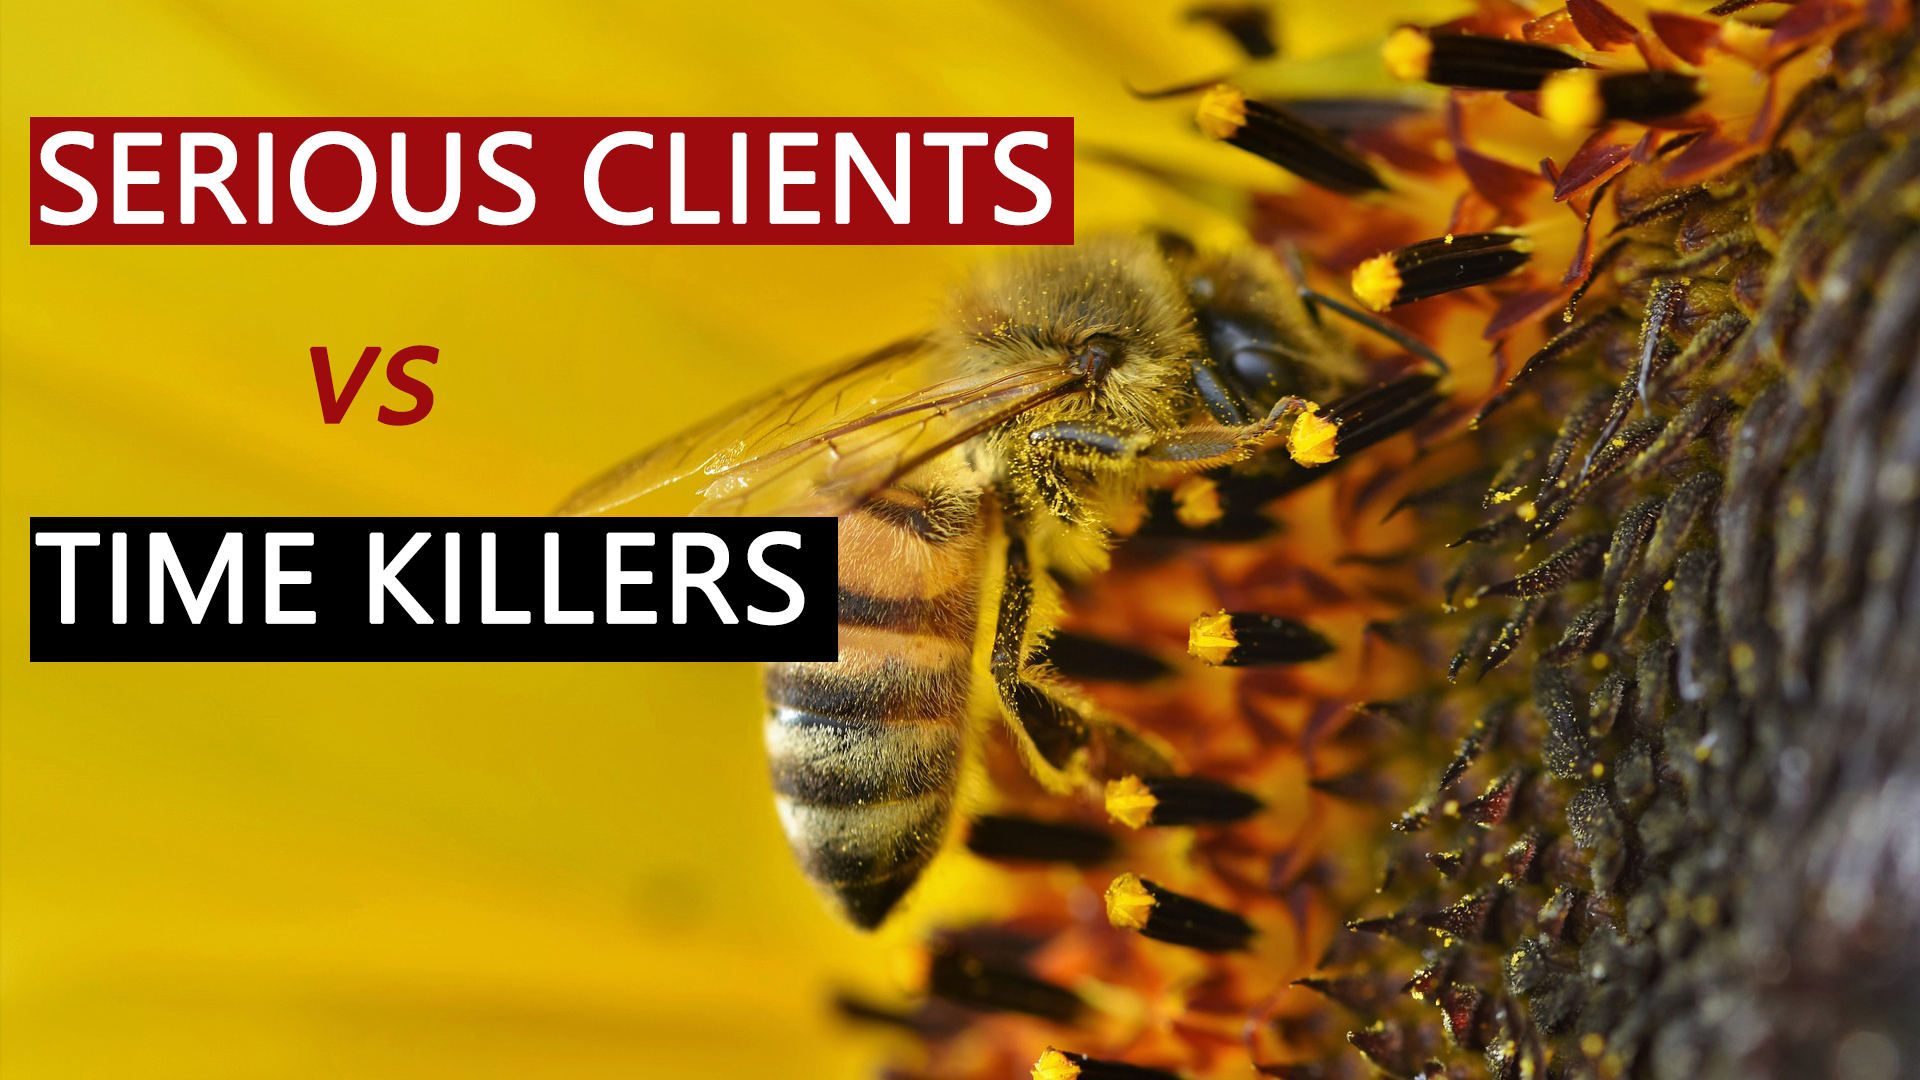 How to Differentiate Between Serious Clients and 'Time Killers'